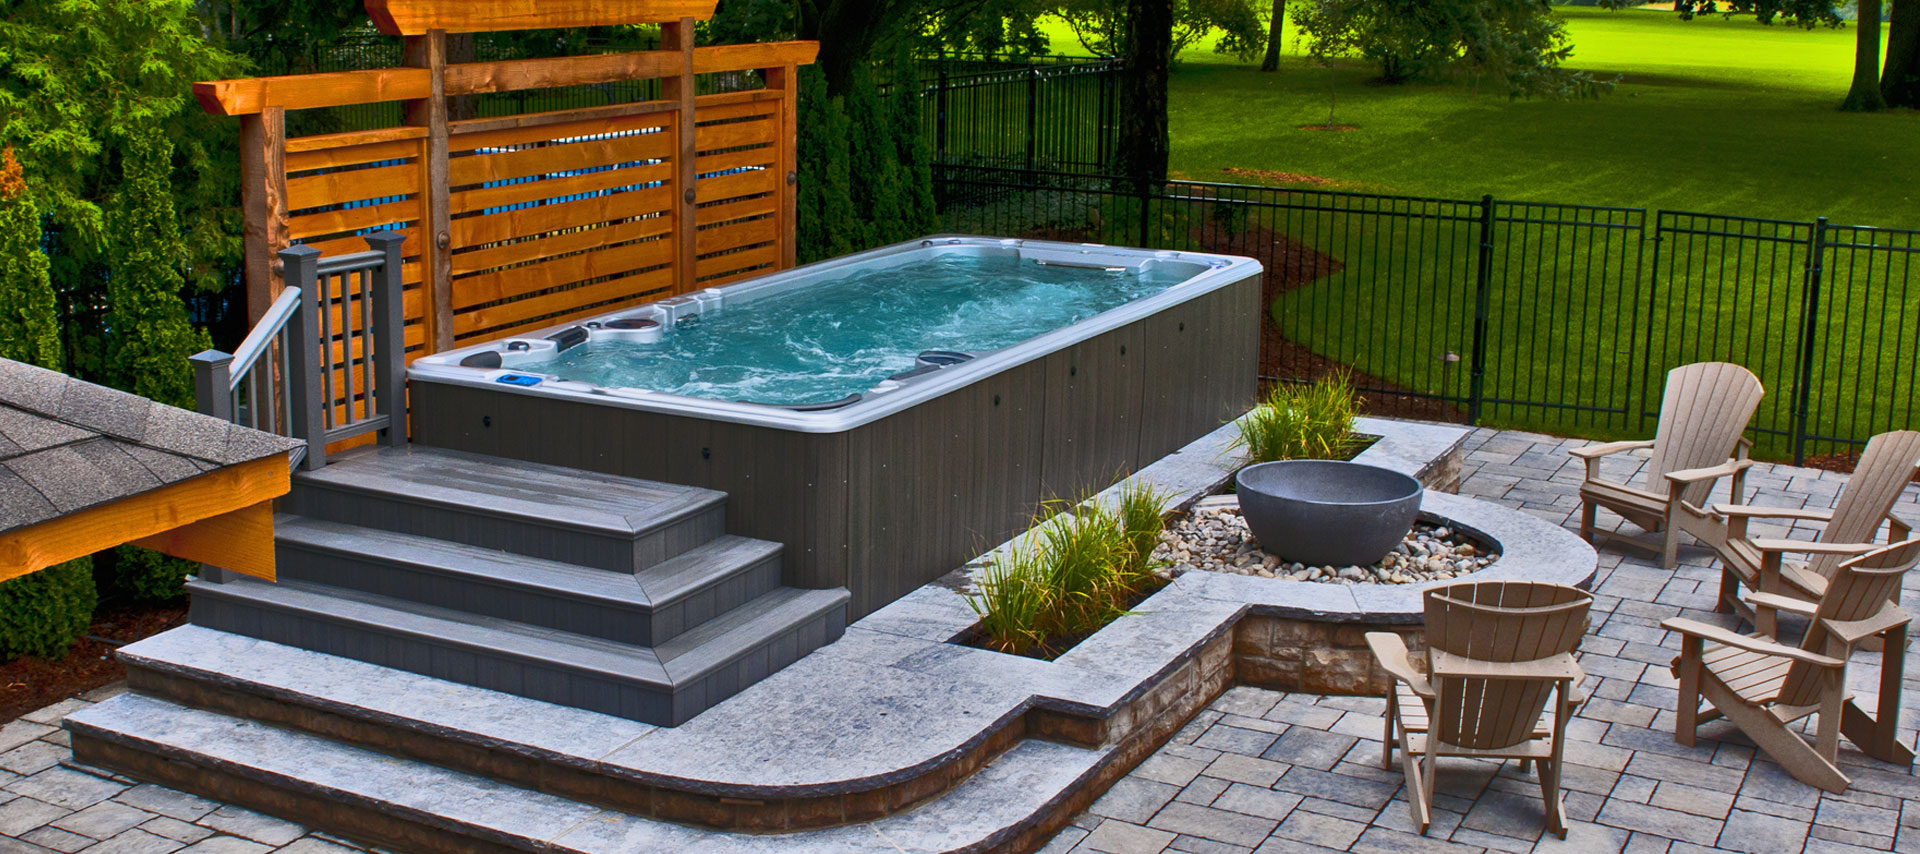 www.quinju.com hot tub or spa